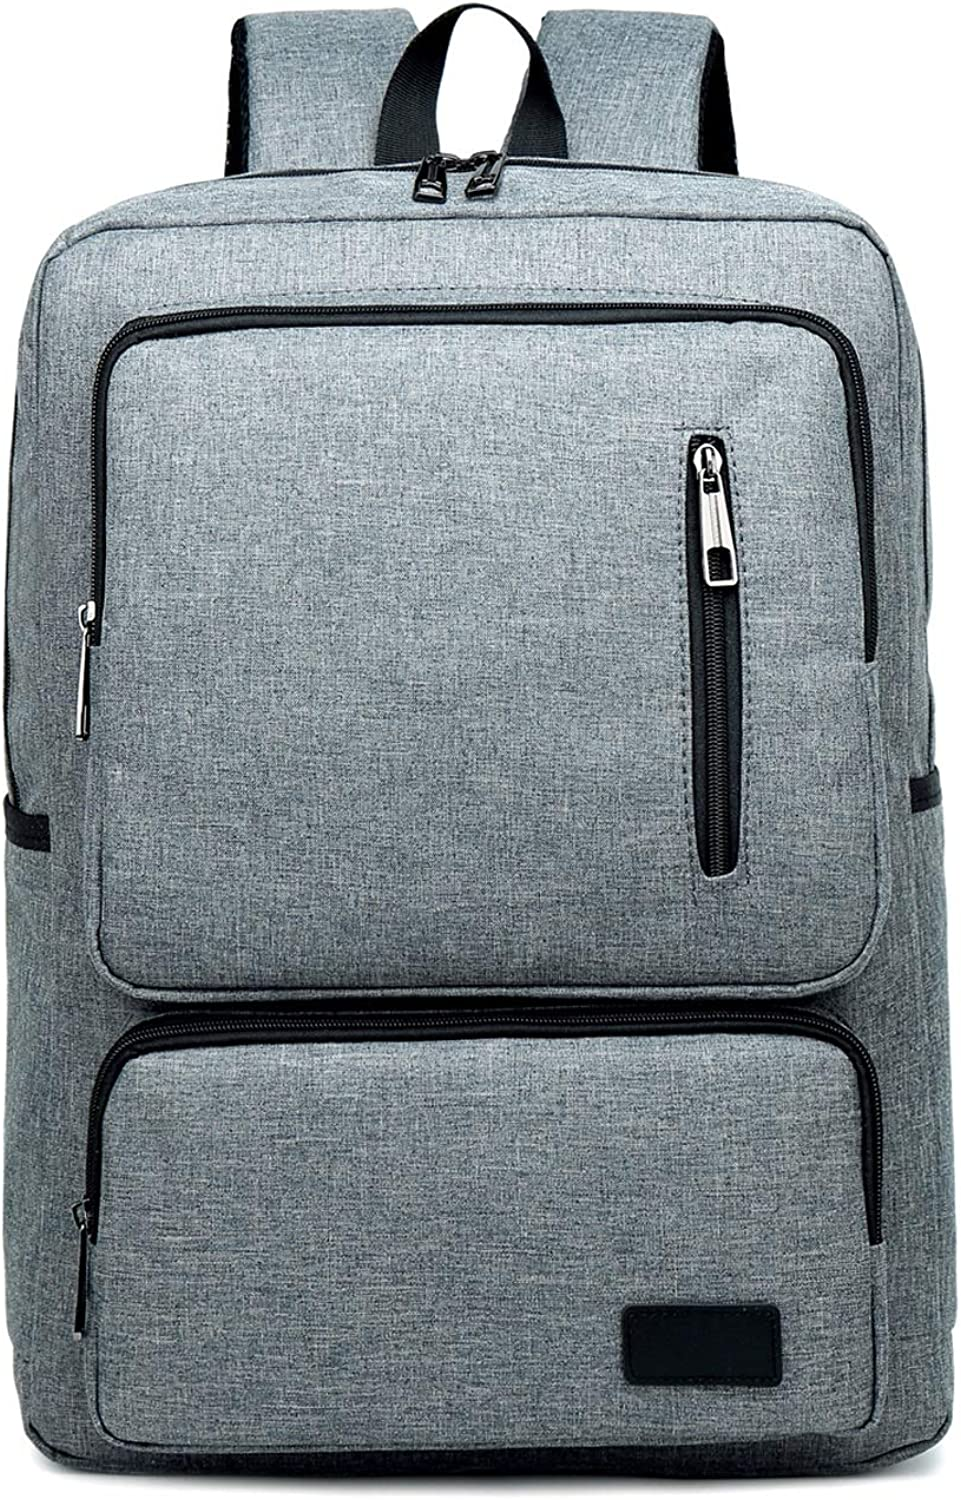 GuiPing Fashion Large Capacity Casual Notebook Tablet Backpack